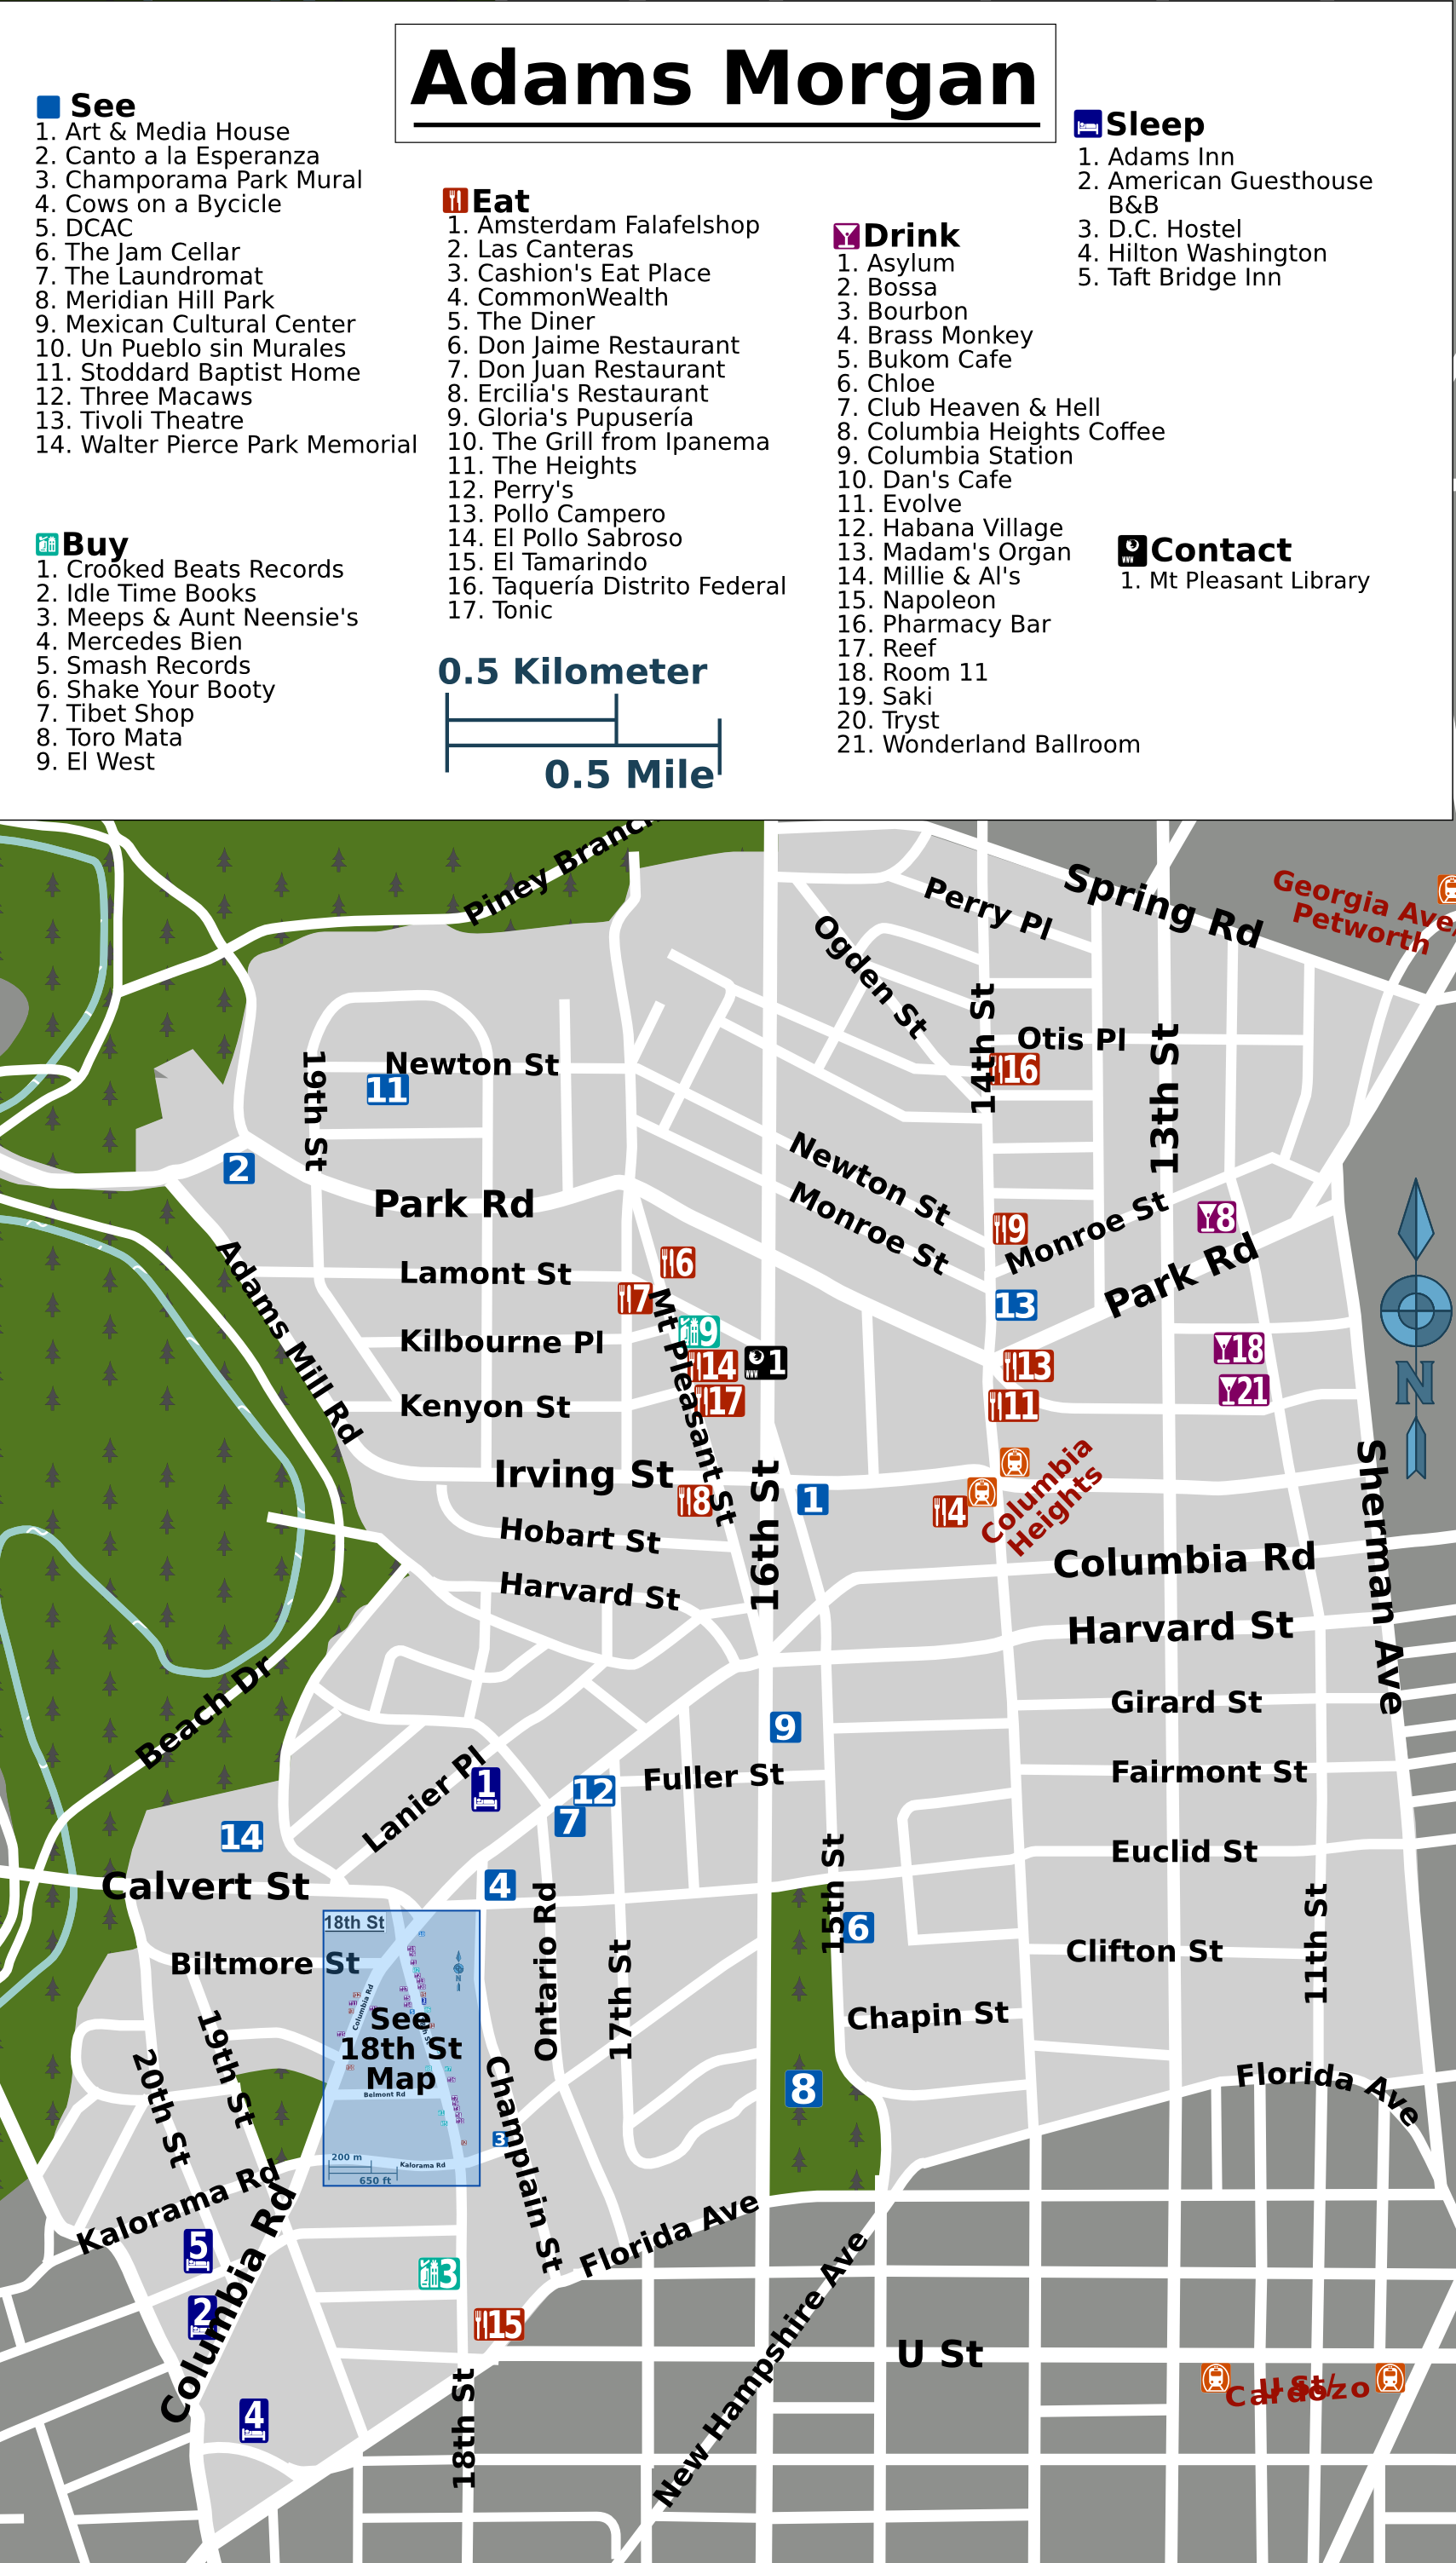 File:Adams Morgan map.png   Wikimedia Commons